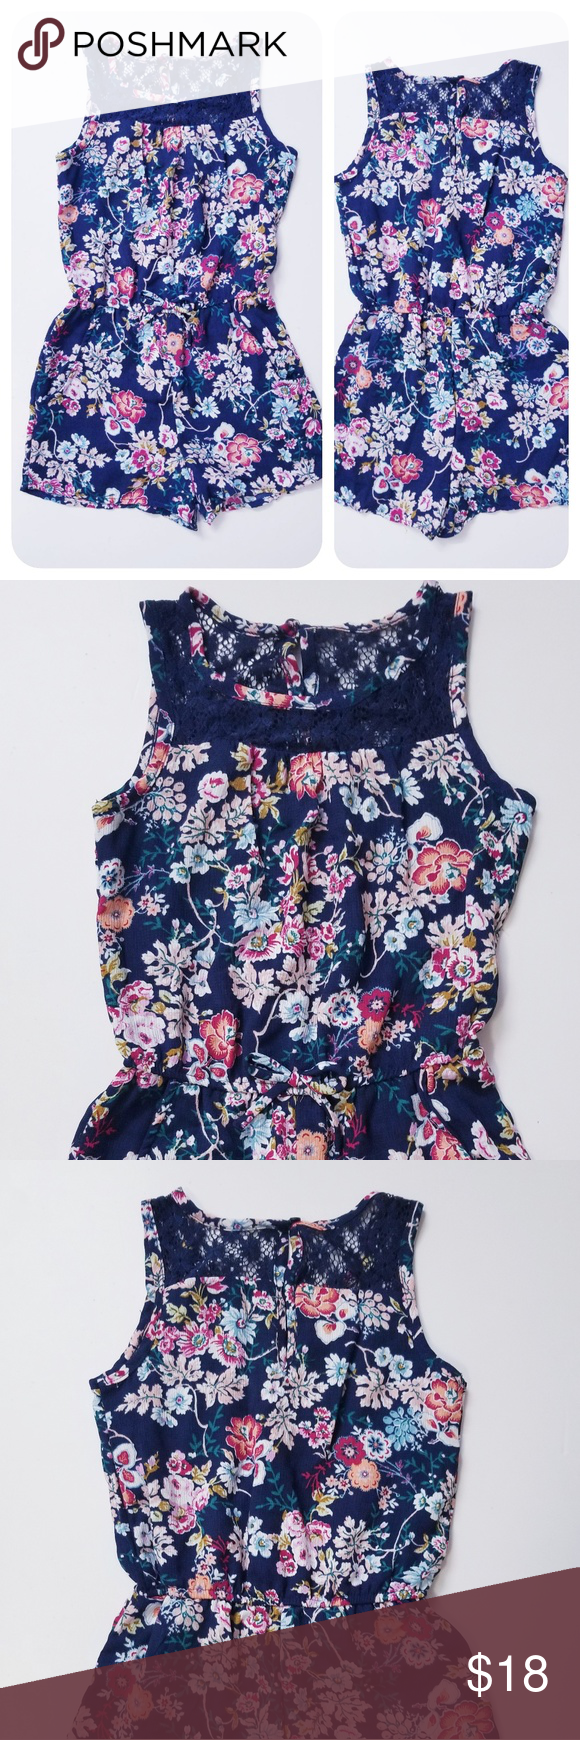 e5b145938aab Paper doll navy girls floral romper New without tag Navy floral girls romper  100% polyester